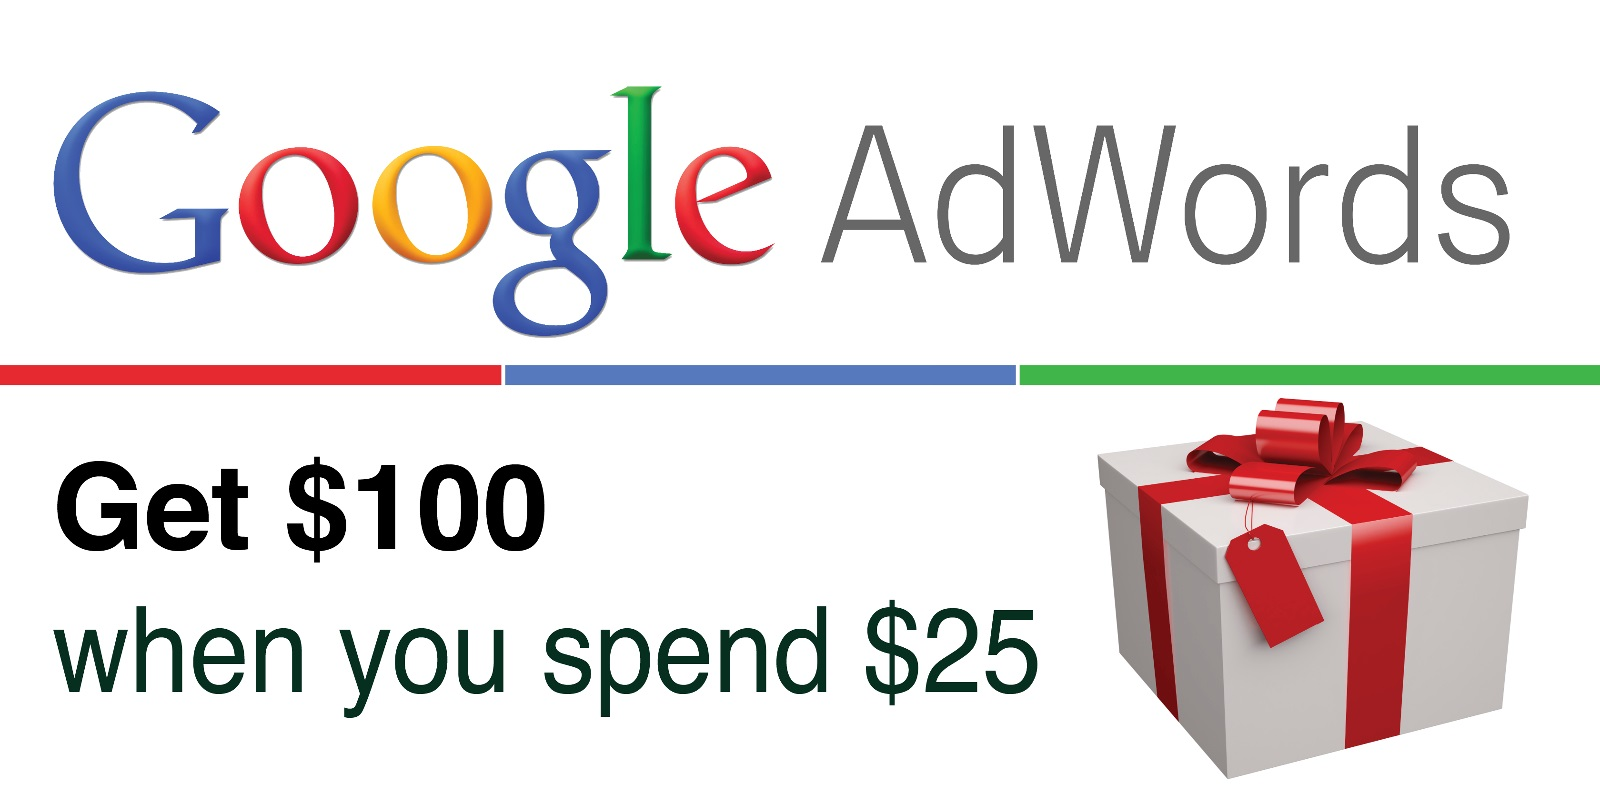 Google Adwords Coupon 100 dollar Australia for 2017 new accounts